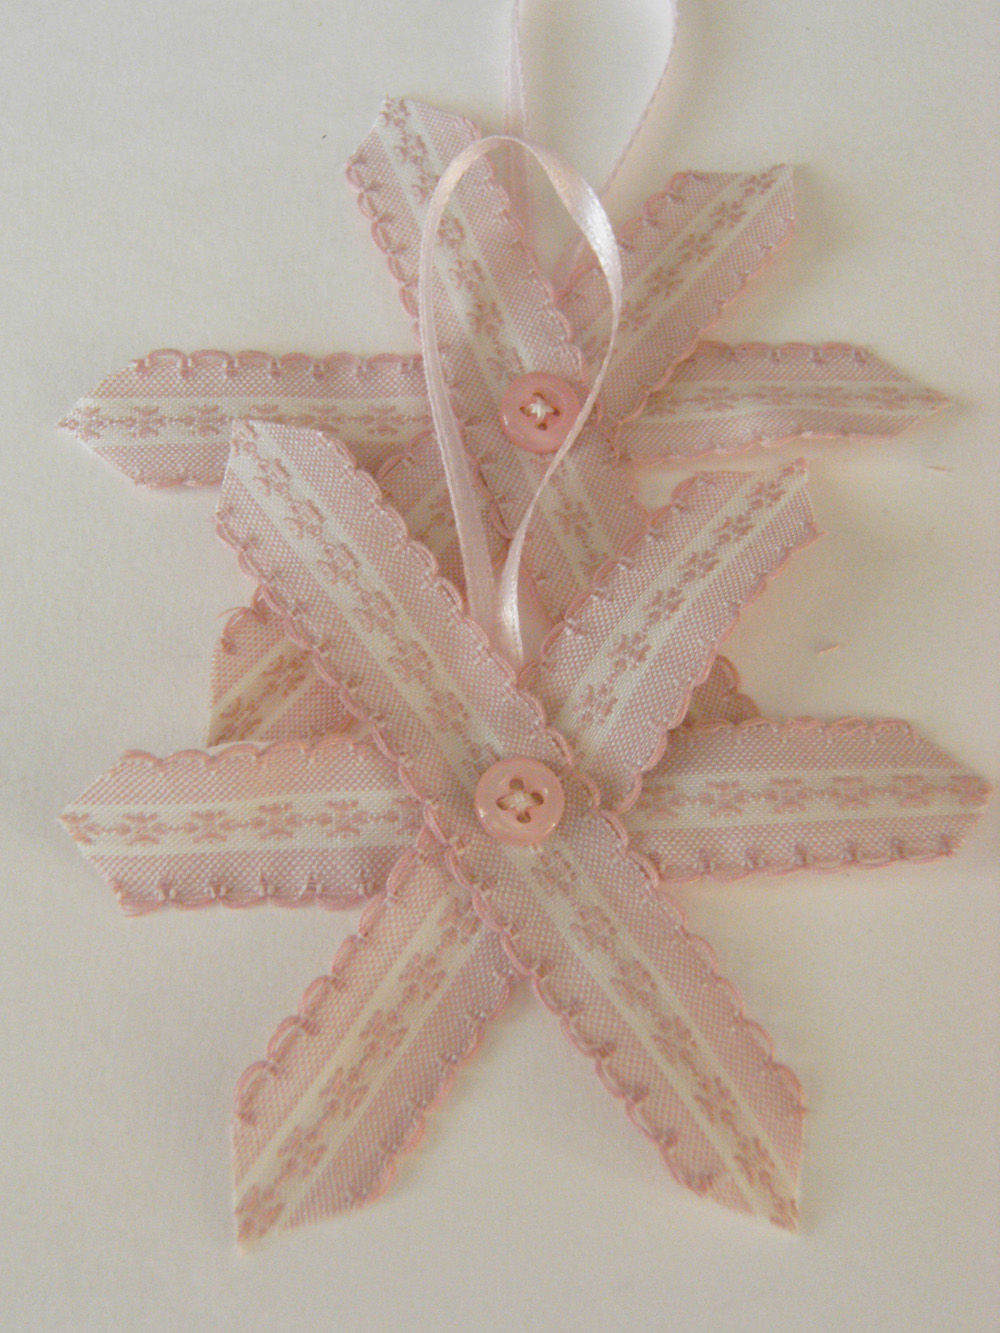 Vintage Pink Ticking Ribbon Stars for Decor, Gift Wrap or Paper crafts